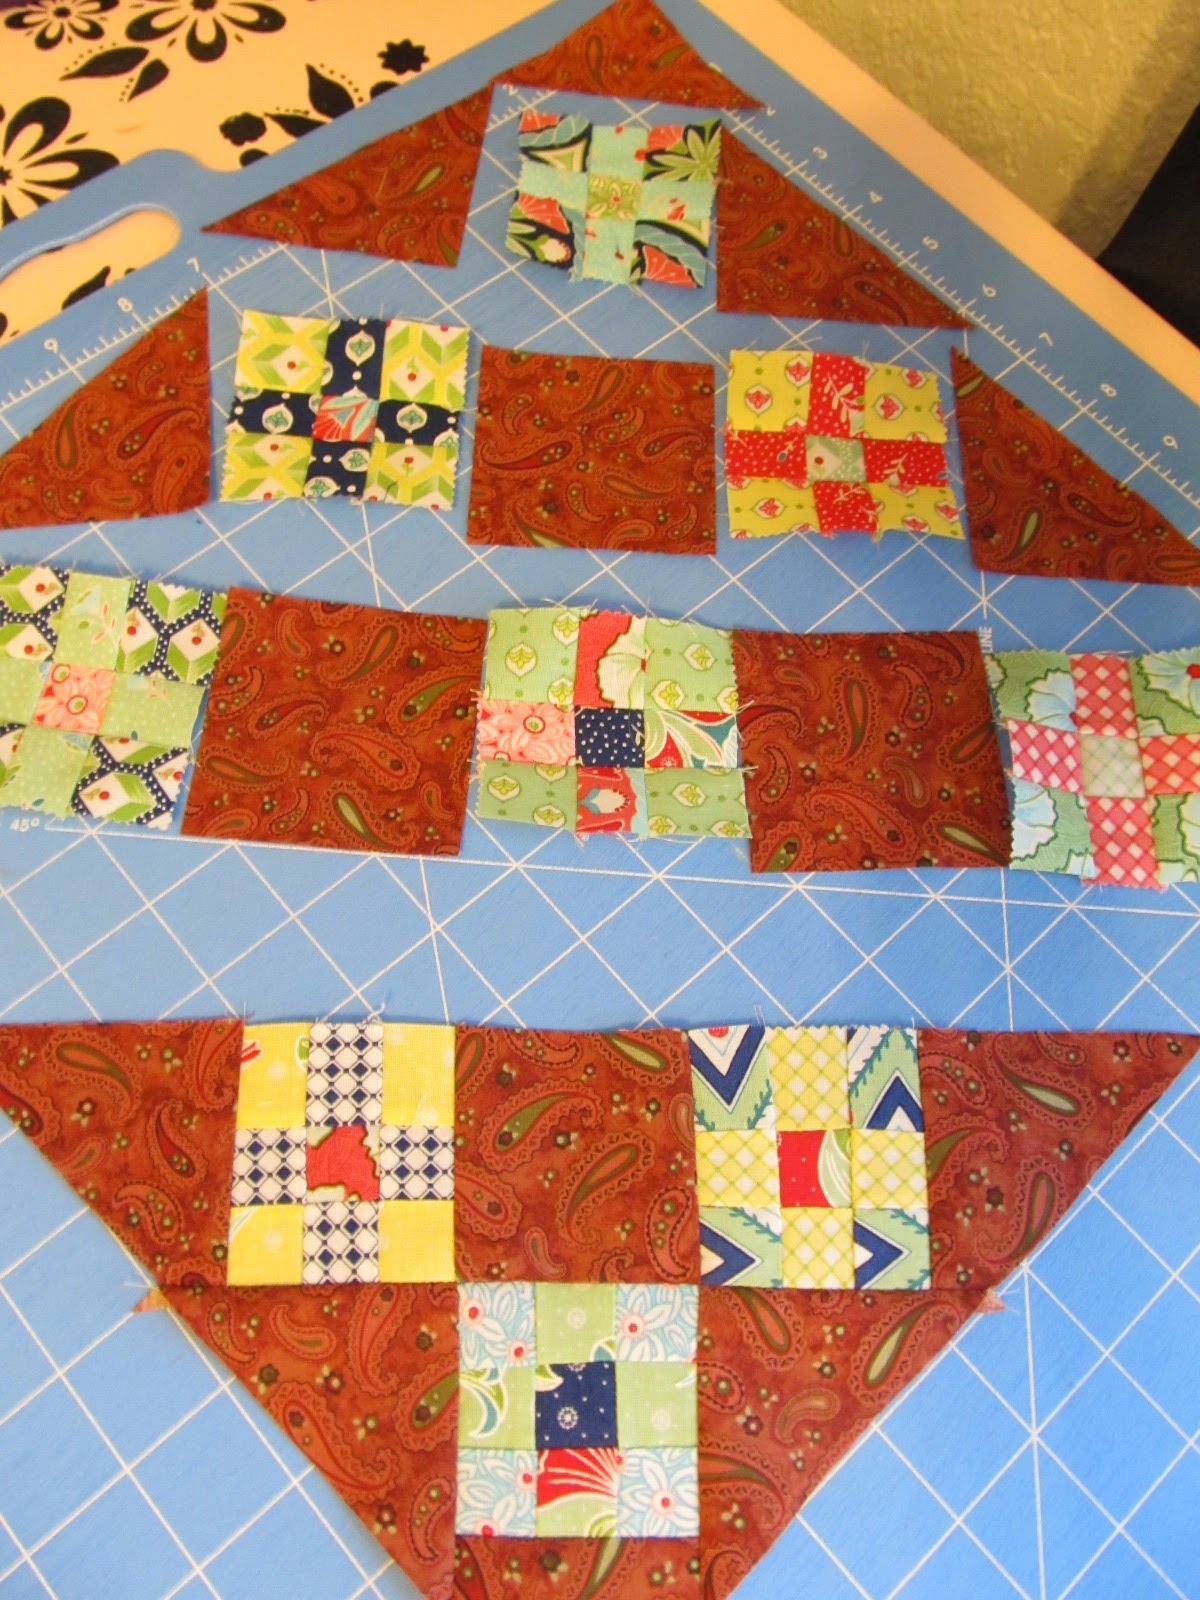 Nine Patch Quilted Table Topper Tutorial by The Quilt Ladies